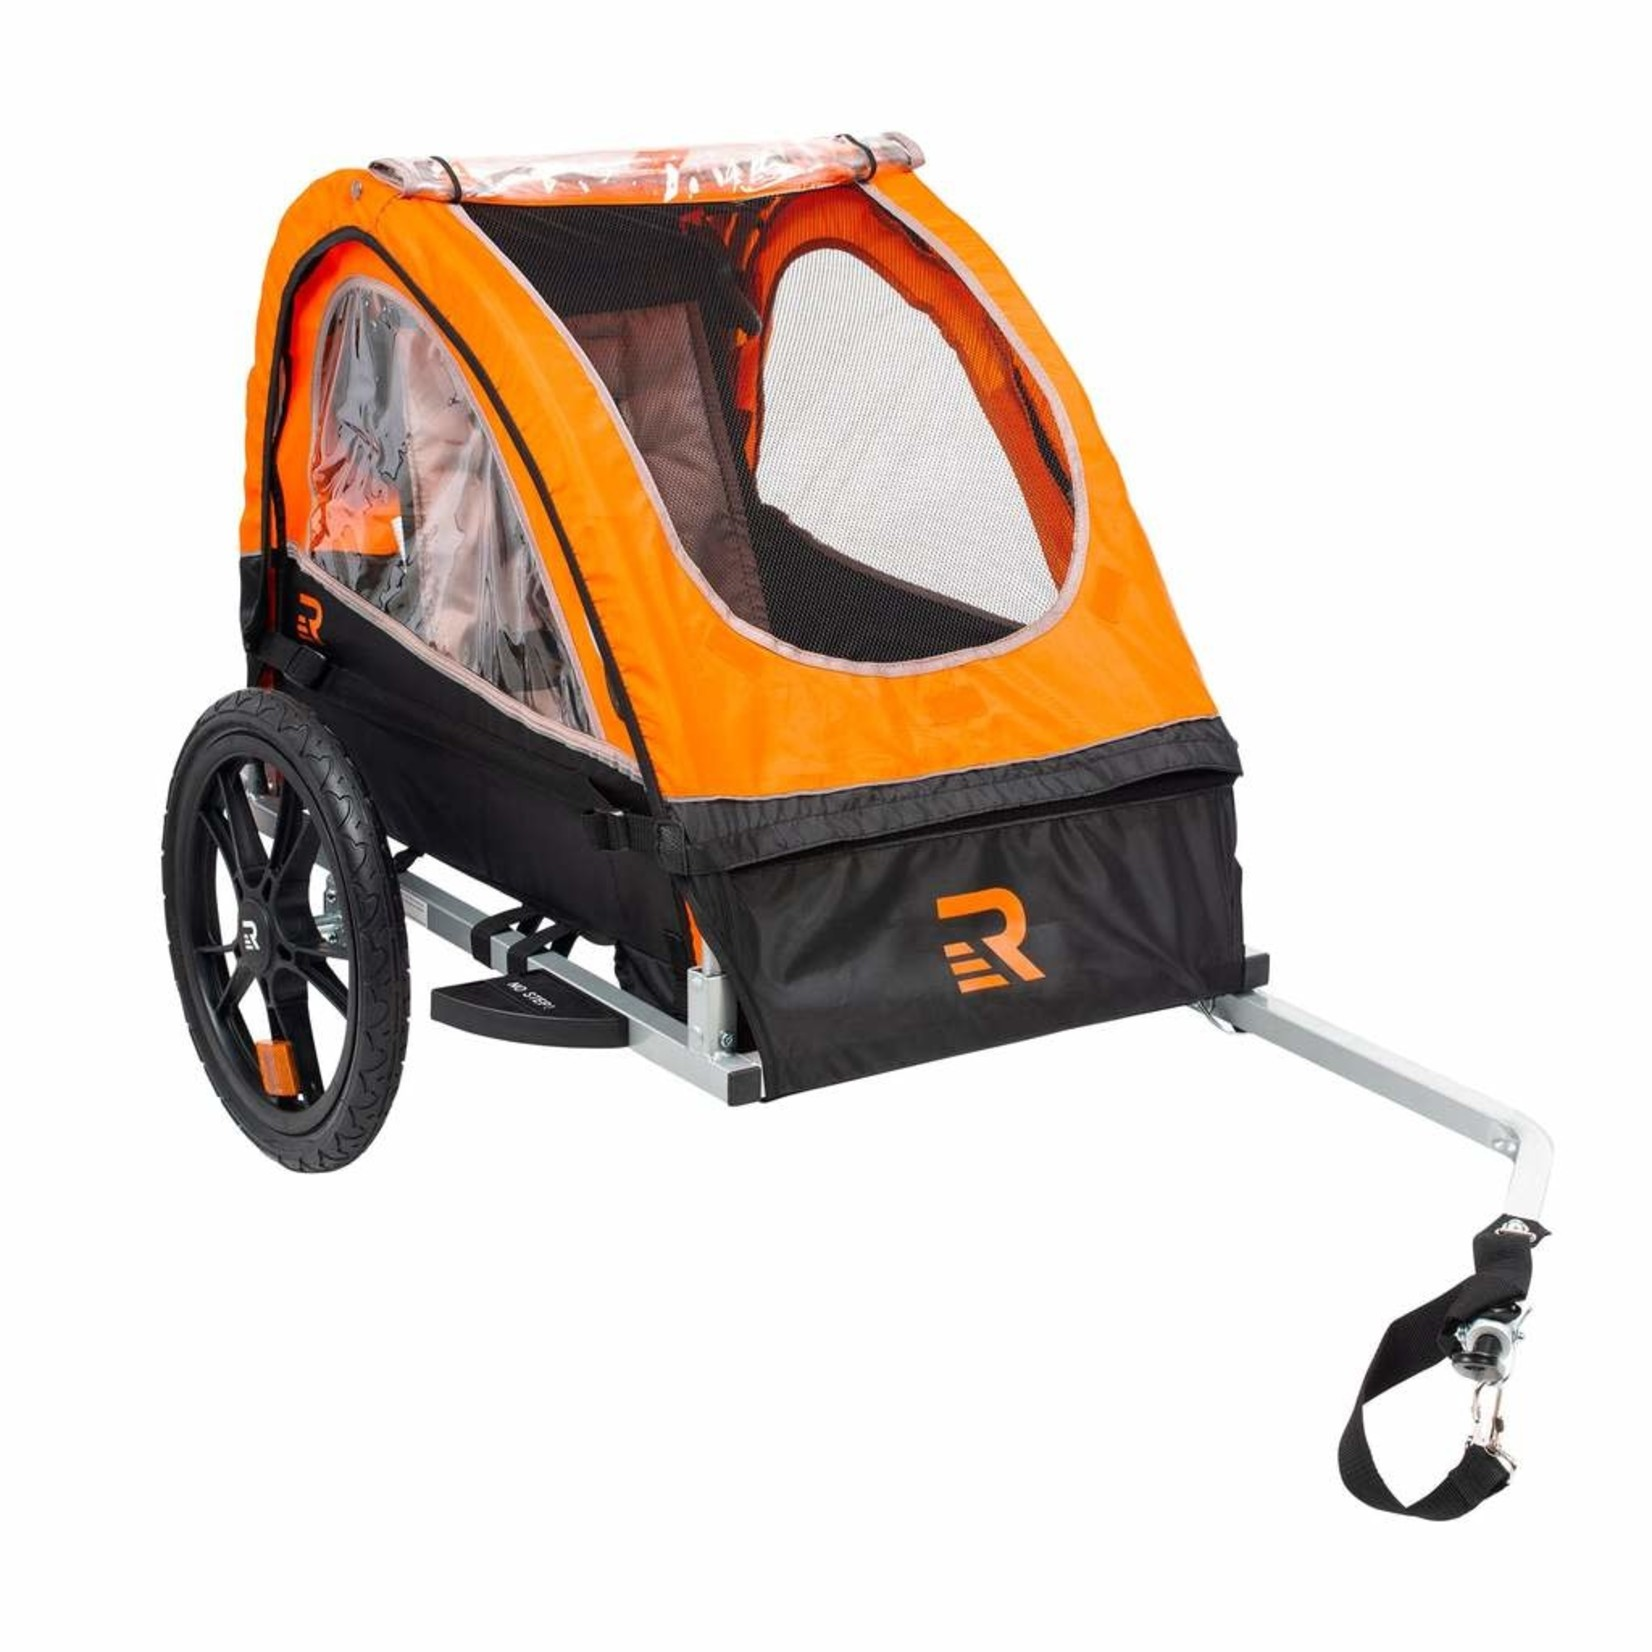 Retrospec Rover Bike Trailer 1 pass Orange